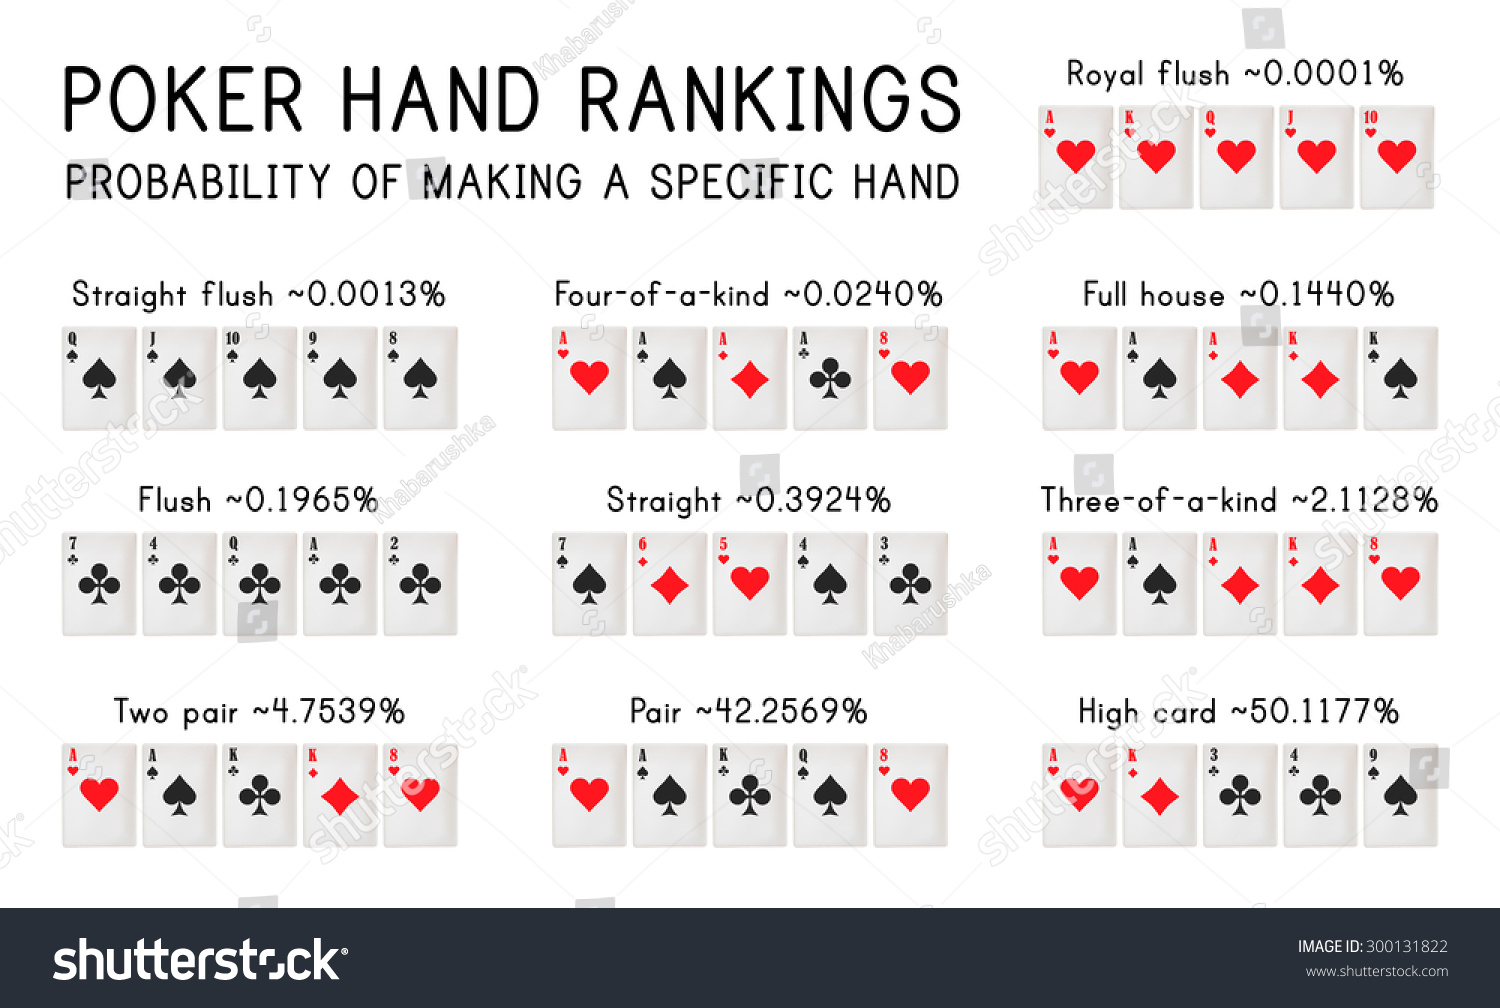 Card hand rankings